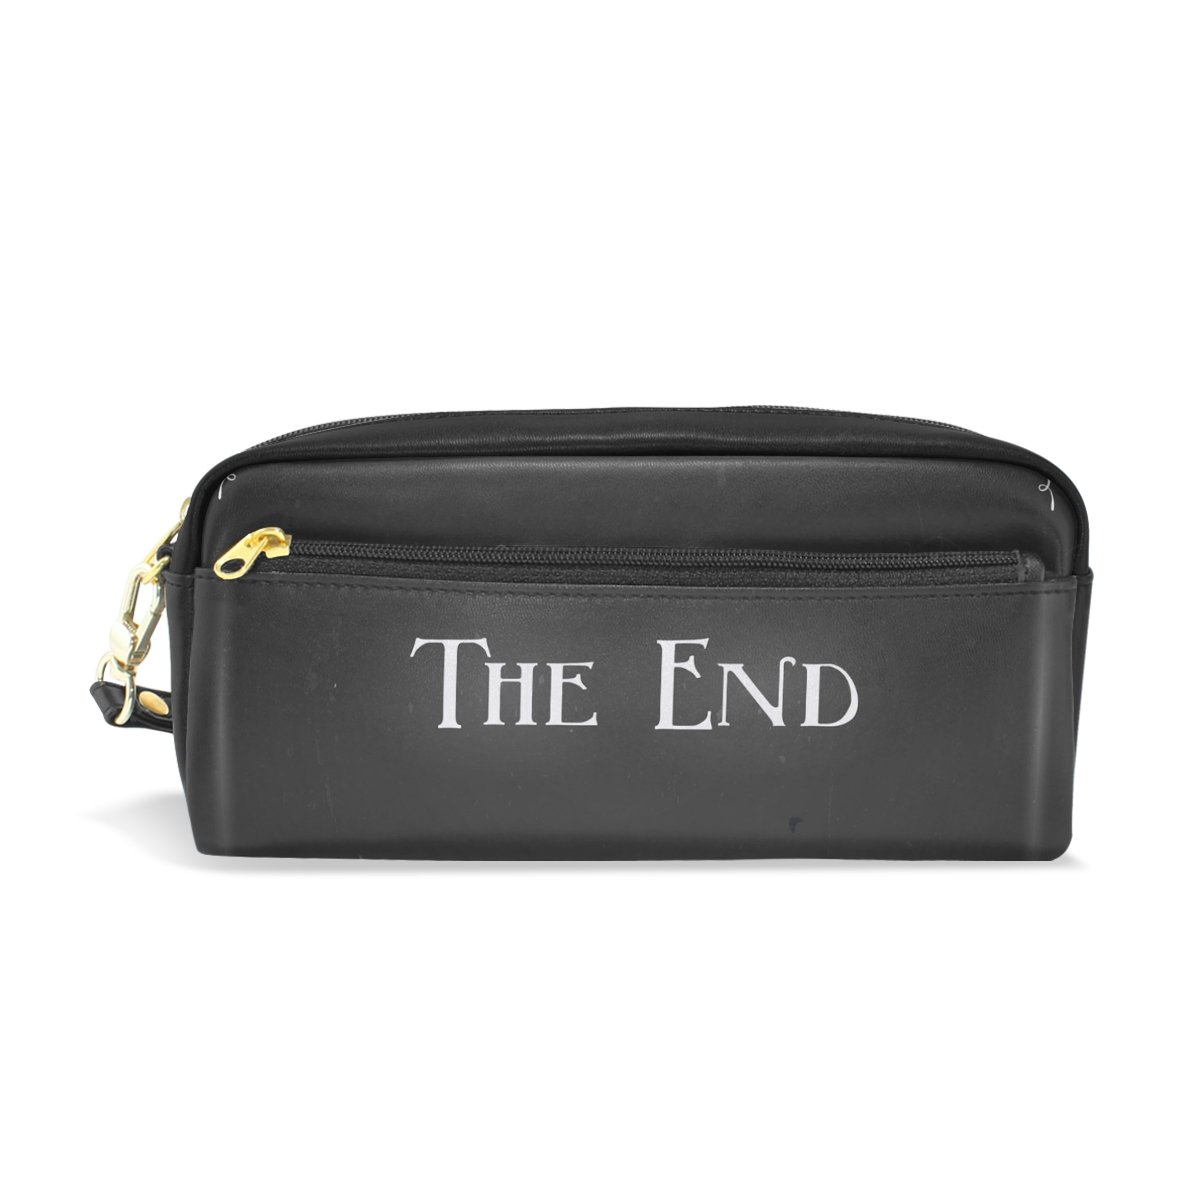 LORVIES Movie Ending Screen Portable PU Leather Pencil Case School Pen Bags Stationary Pouch Case Large Capacity Makeup Cosmetic Bag